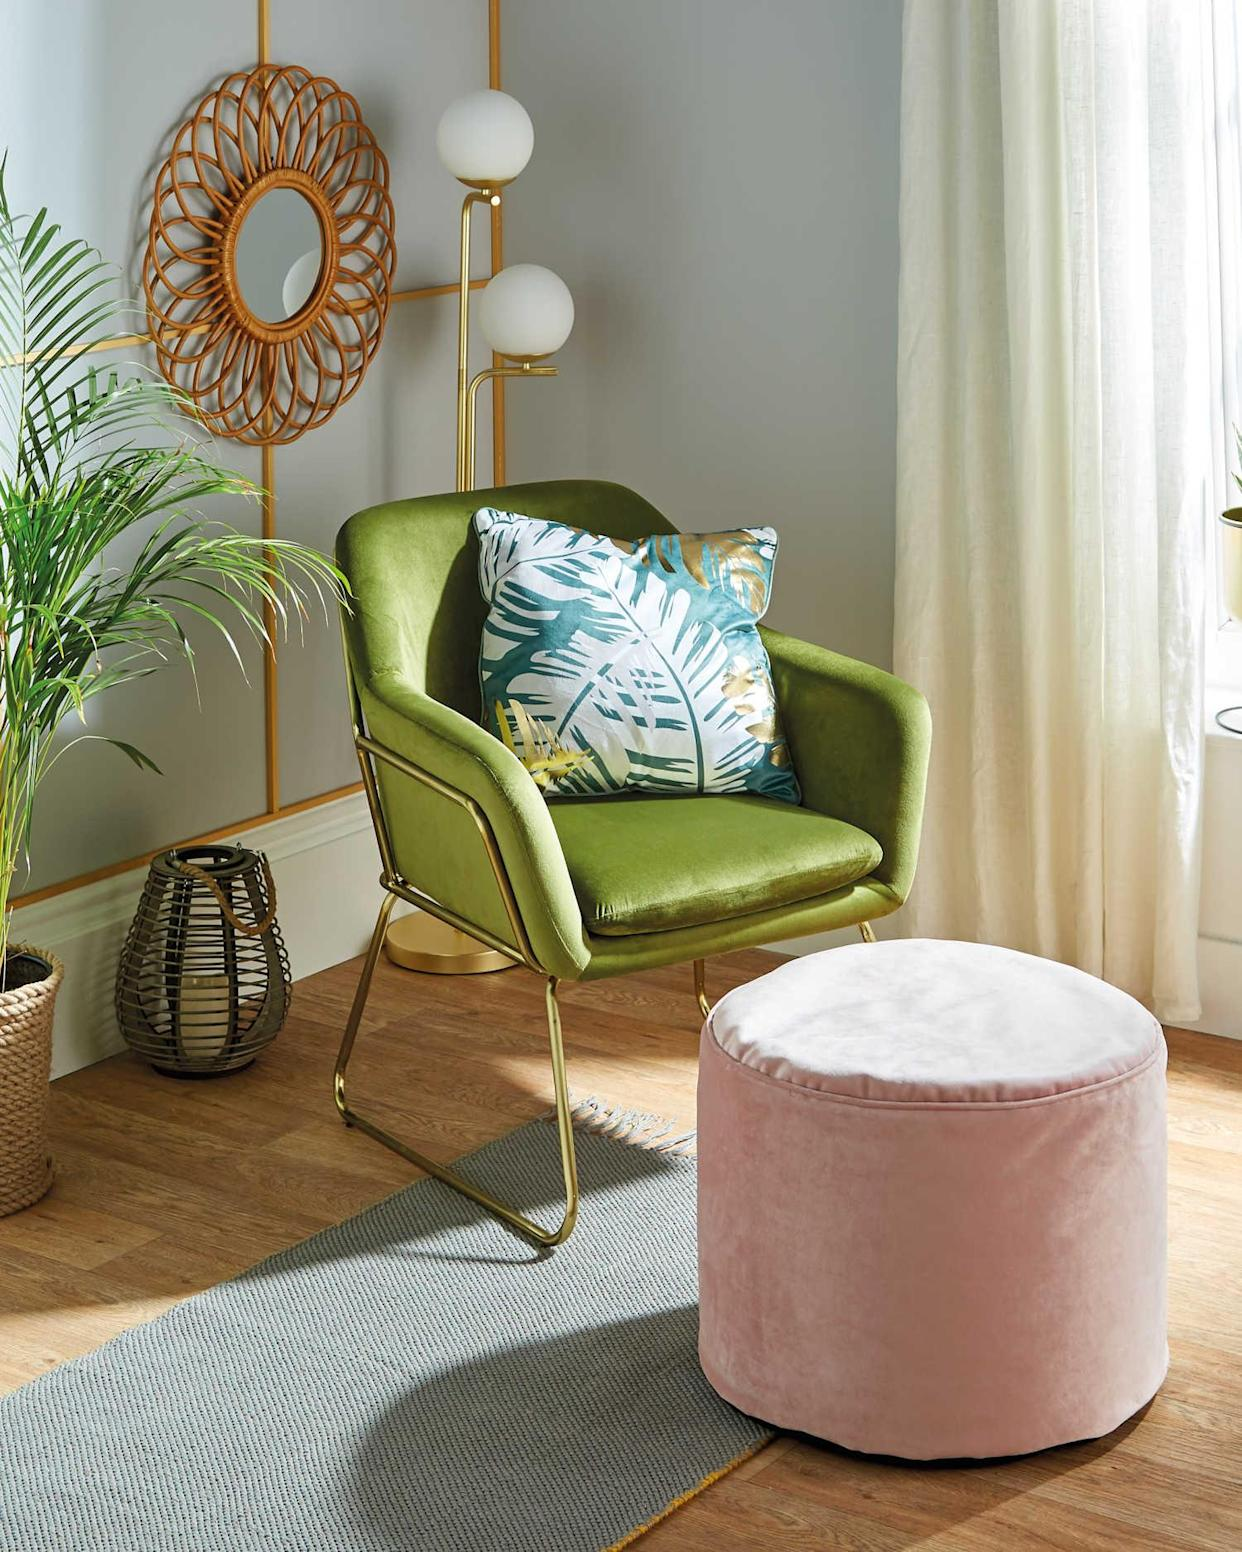 We can't believe how affordable this luxury-looking chair is. (Aldi)